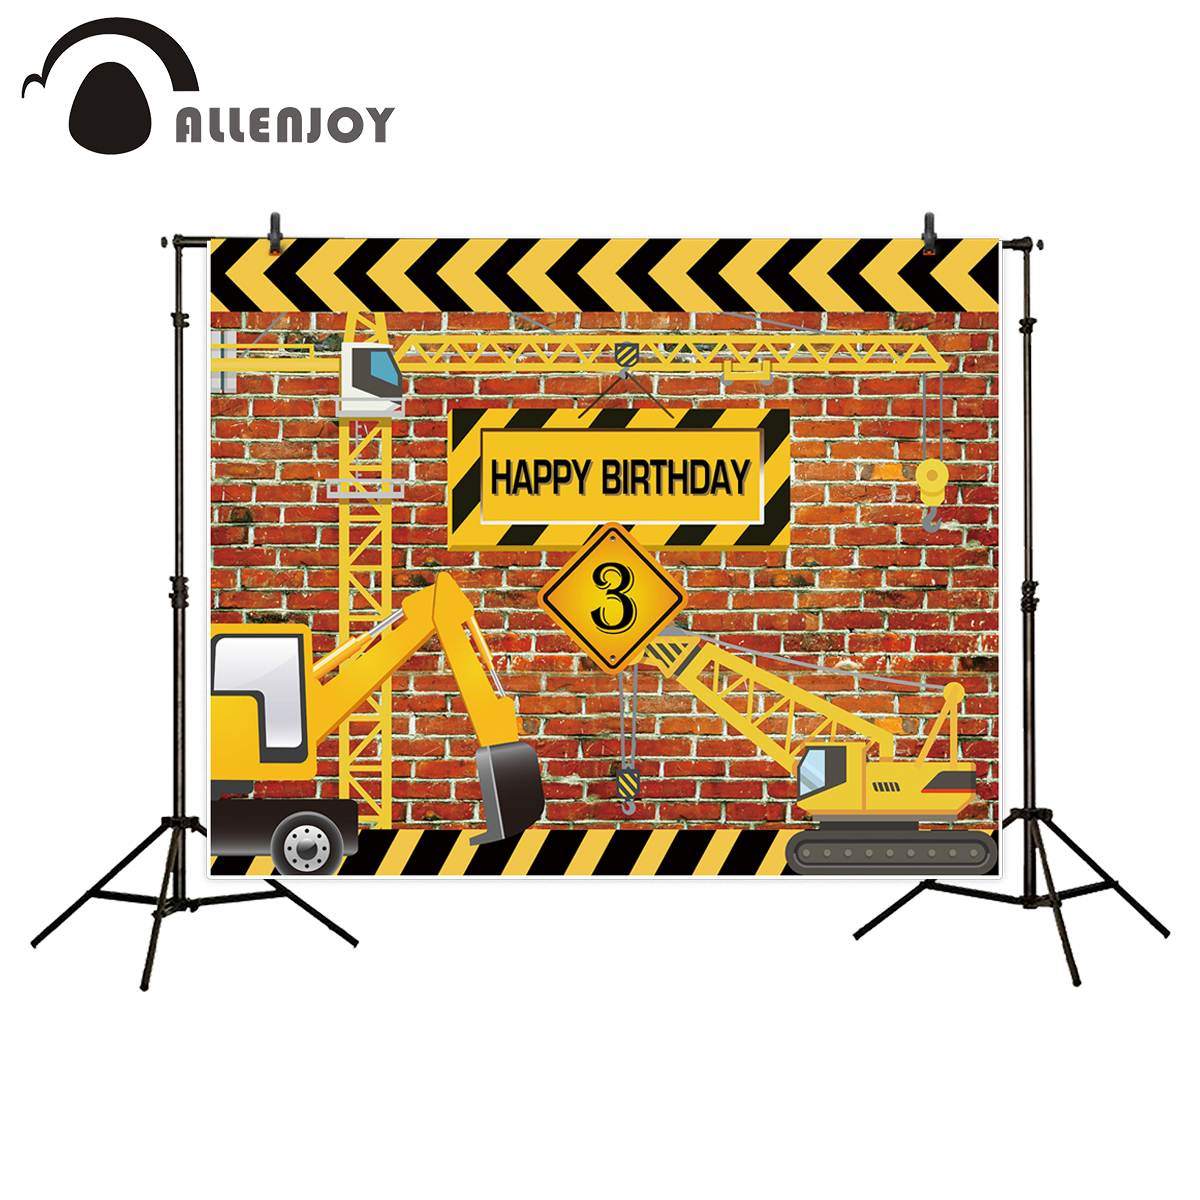 Allenjoy background for birthday photograph Construction Party Banner Decor Brick Wall Backdrop Dump Truck Boy photo studio prop girls birthday backdrops baby shower background black white stripe cosmetic invitation celebration table banner party allenjoy